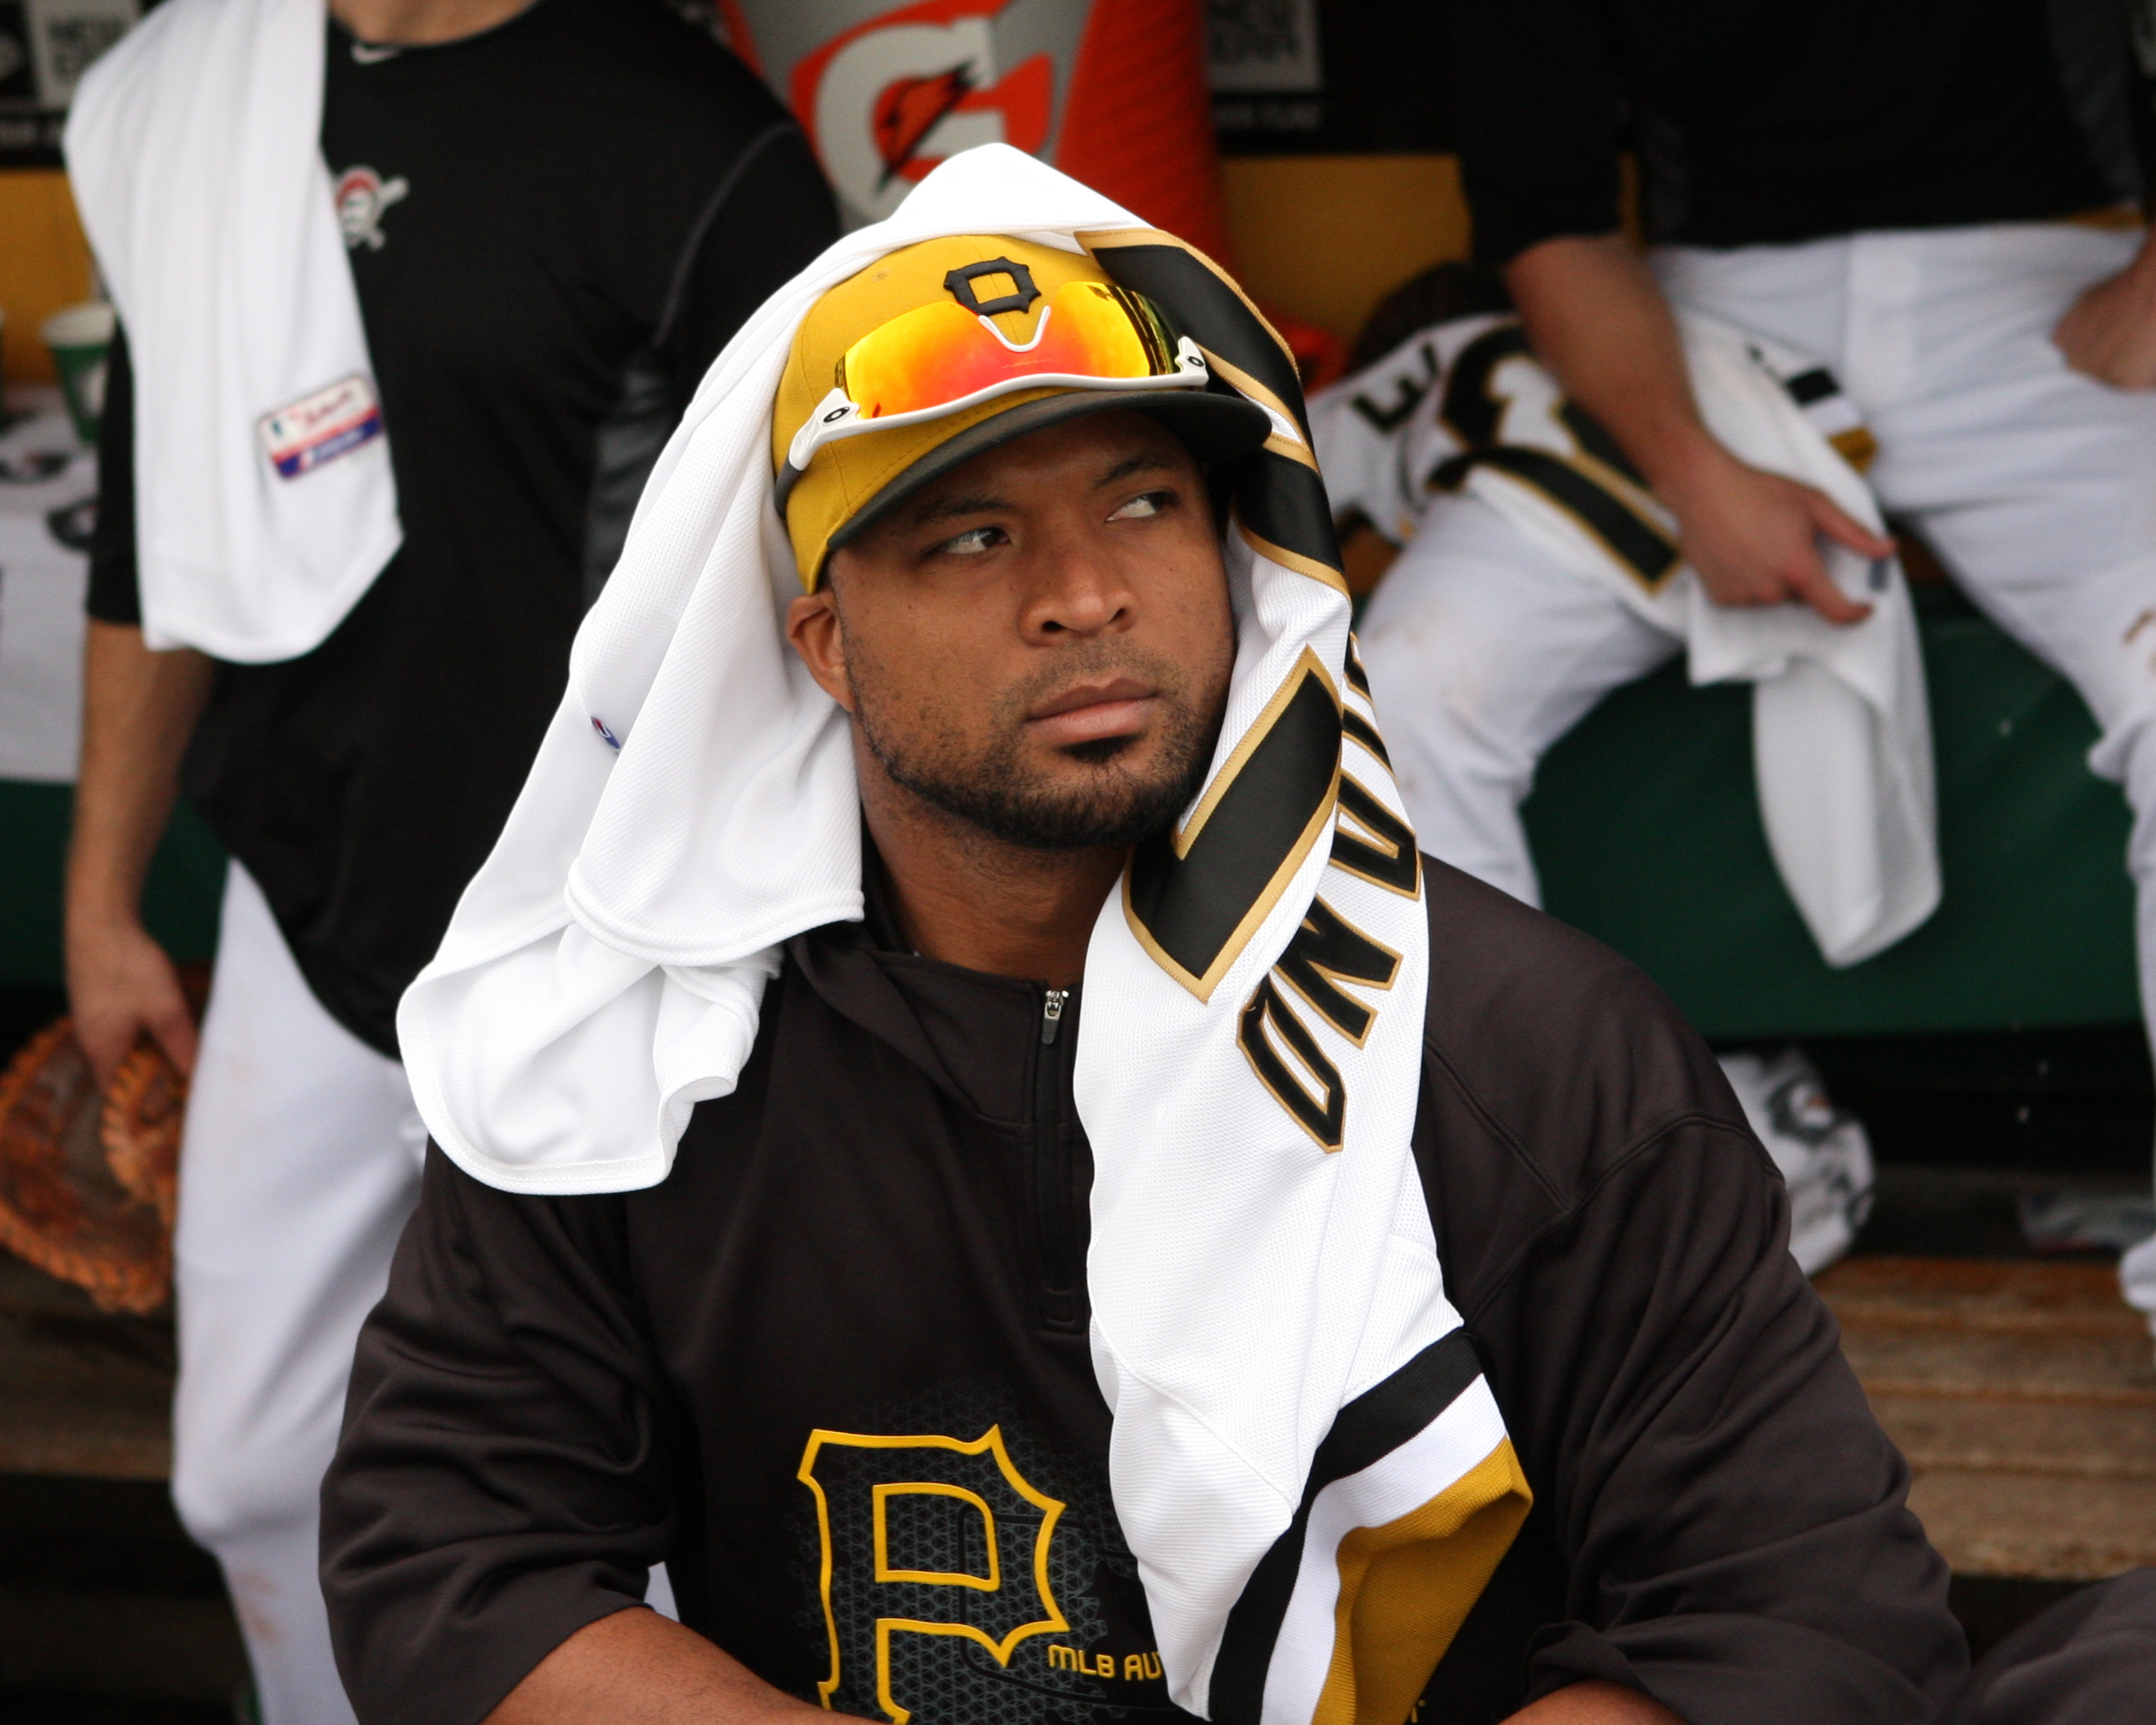 An offseason conversation with Francisco Liriano convinced Volquez to come to Pittsburgh. (Photo Credit: David Hague)